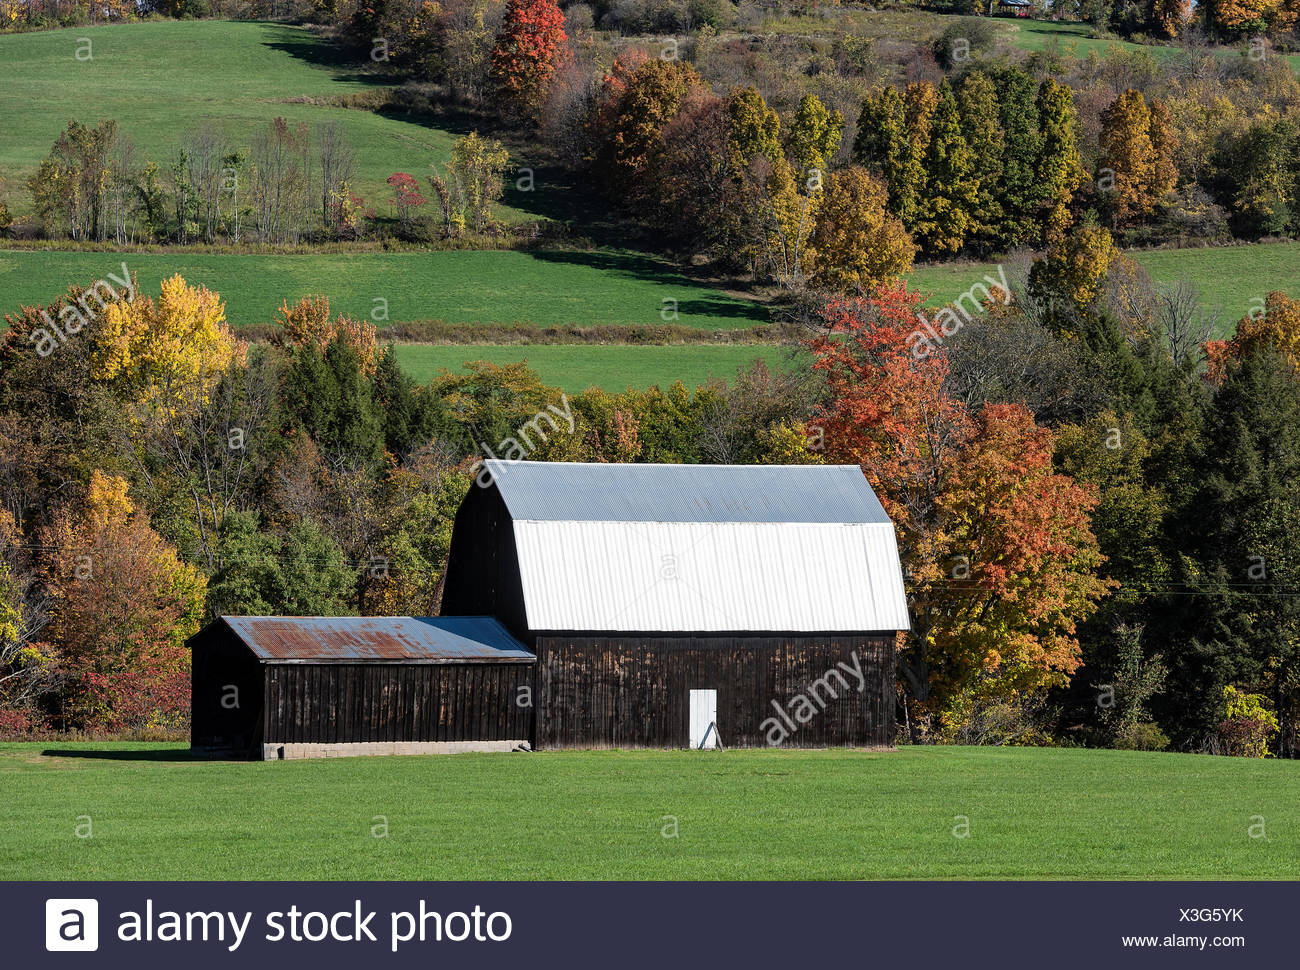 Rural barn with tin roof, Covington, New York, USA - Stock Image